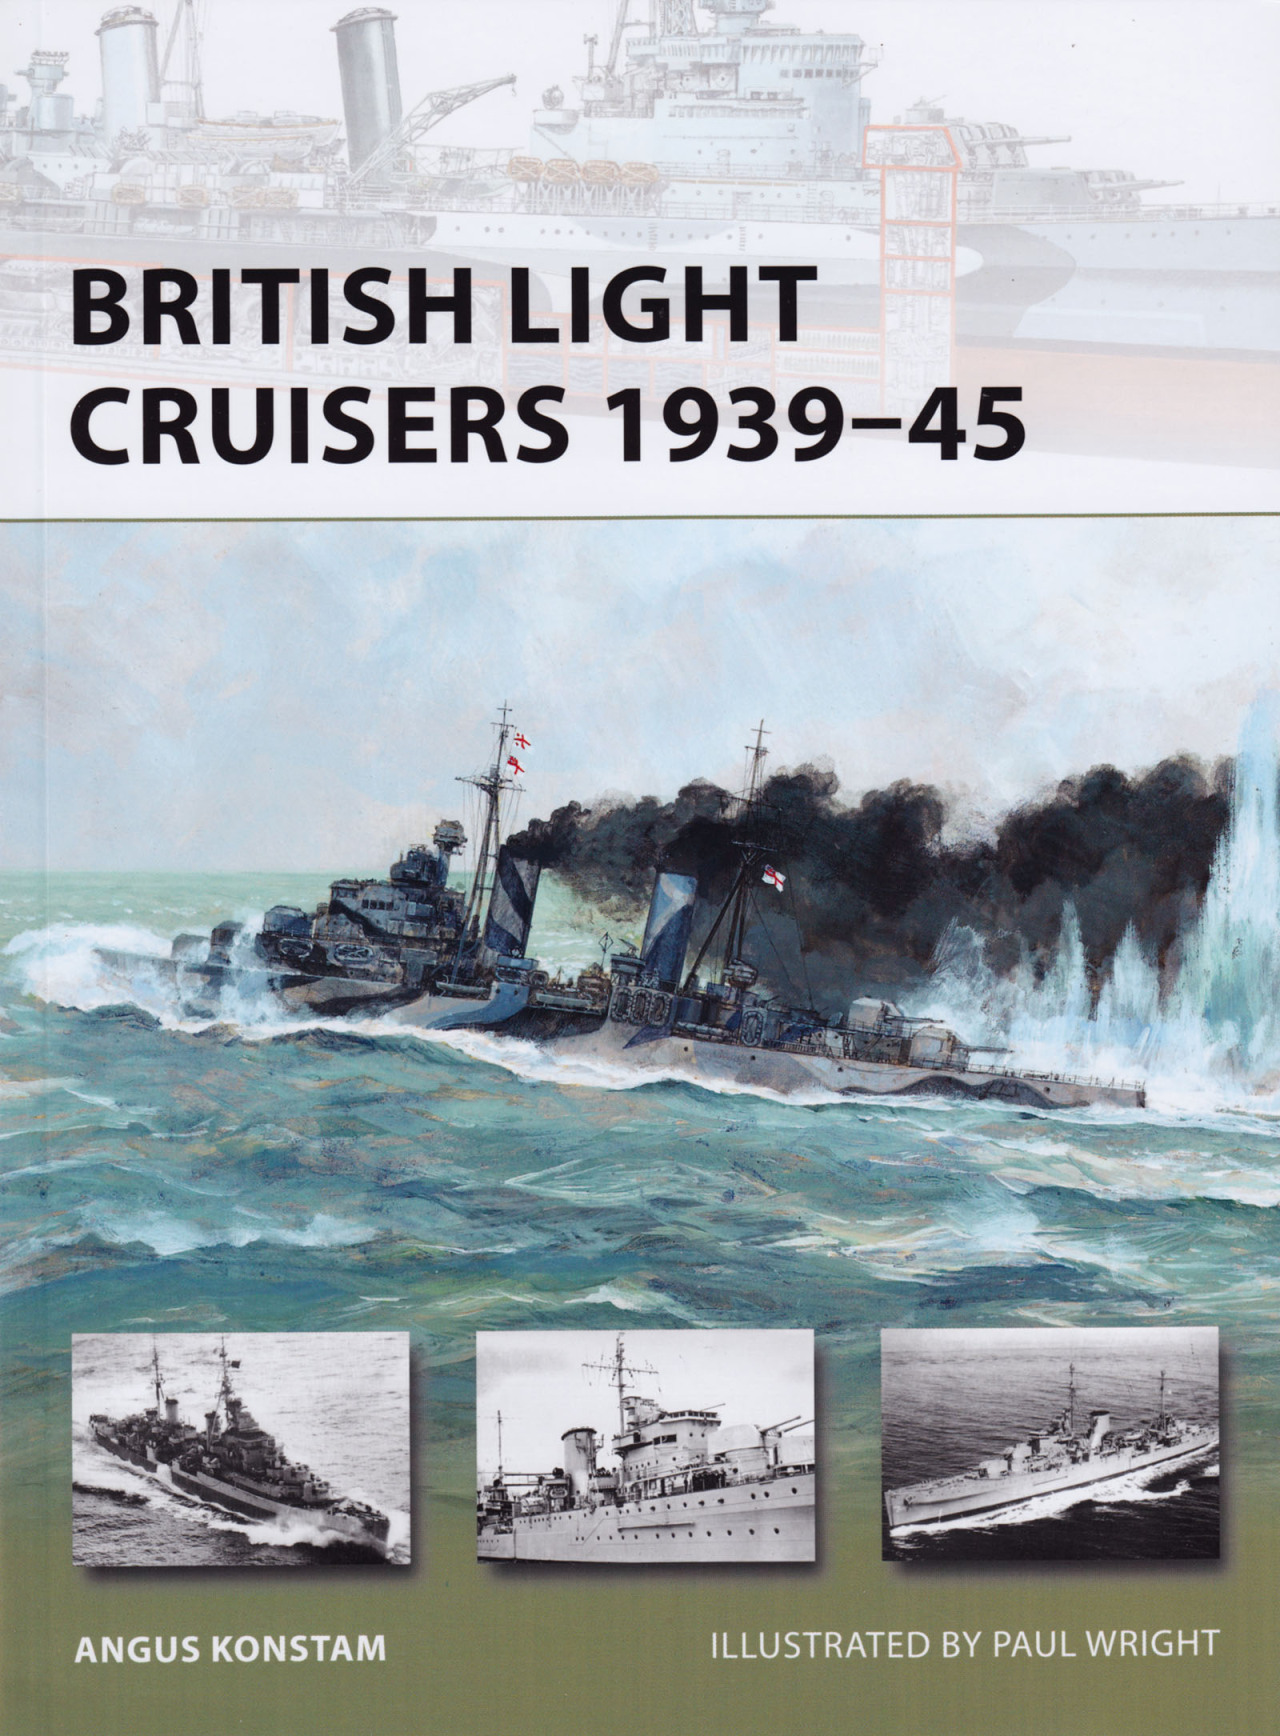 BOOK REVIEW: British Light Cruisers 1939-45 By Angus Konstam, illus. by Paul Wright, Osprey Publishing, Oxford, UK. (2012). Reviewed by Richard P. Hallion, Ph.D. Generally speaking, light cruisers have not received as much attention from historians and novelists as have other vessels, though they have figured in two of the great novels of naval warfare—C. S. Forester's The Ship, and Alistair MacLean's H.M.S. Ulysses.  Both relate the travails of protecting convoys from sub, surface, and air attack, the former about supplying Malta, and the latter about the Murmansk run. This slender but highly useful volume is a welcome factual introduction to the type, focusing on those vessels of the Royal Navy, which ably served the Admiralty's needs during the greatest sea war ever fought. (read the full review)